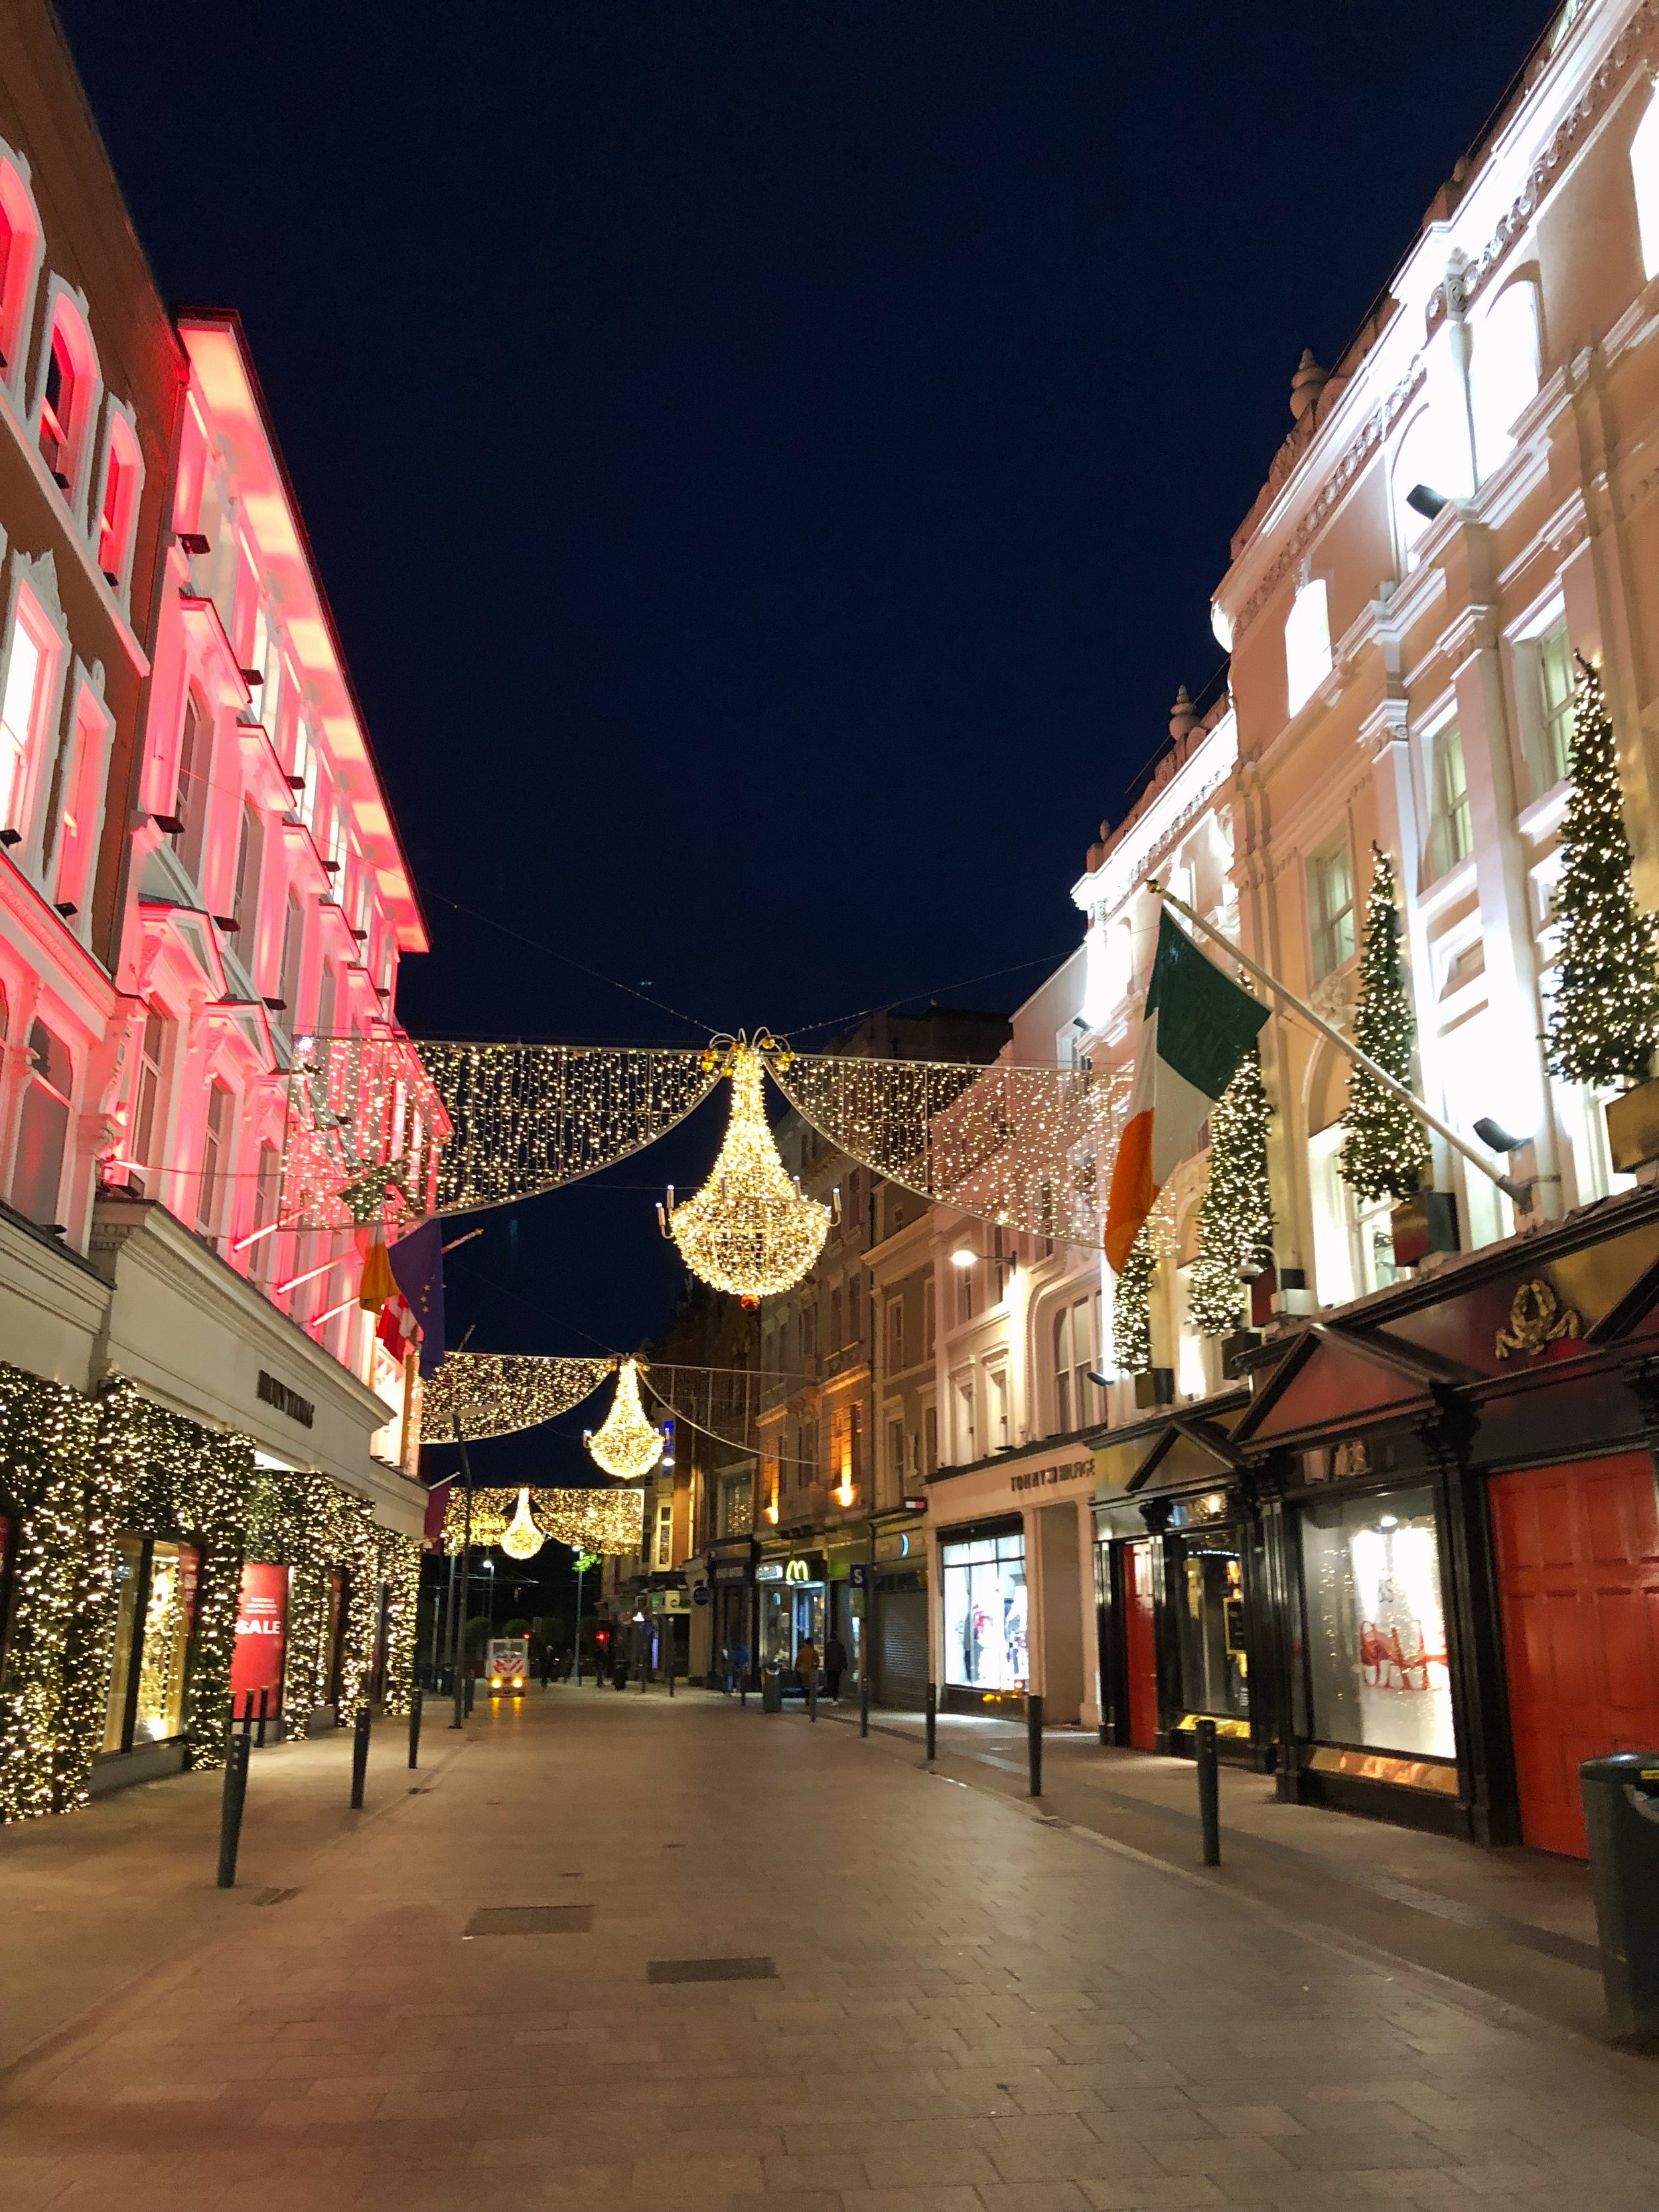 The Christmas decorations that line Grafton street